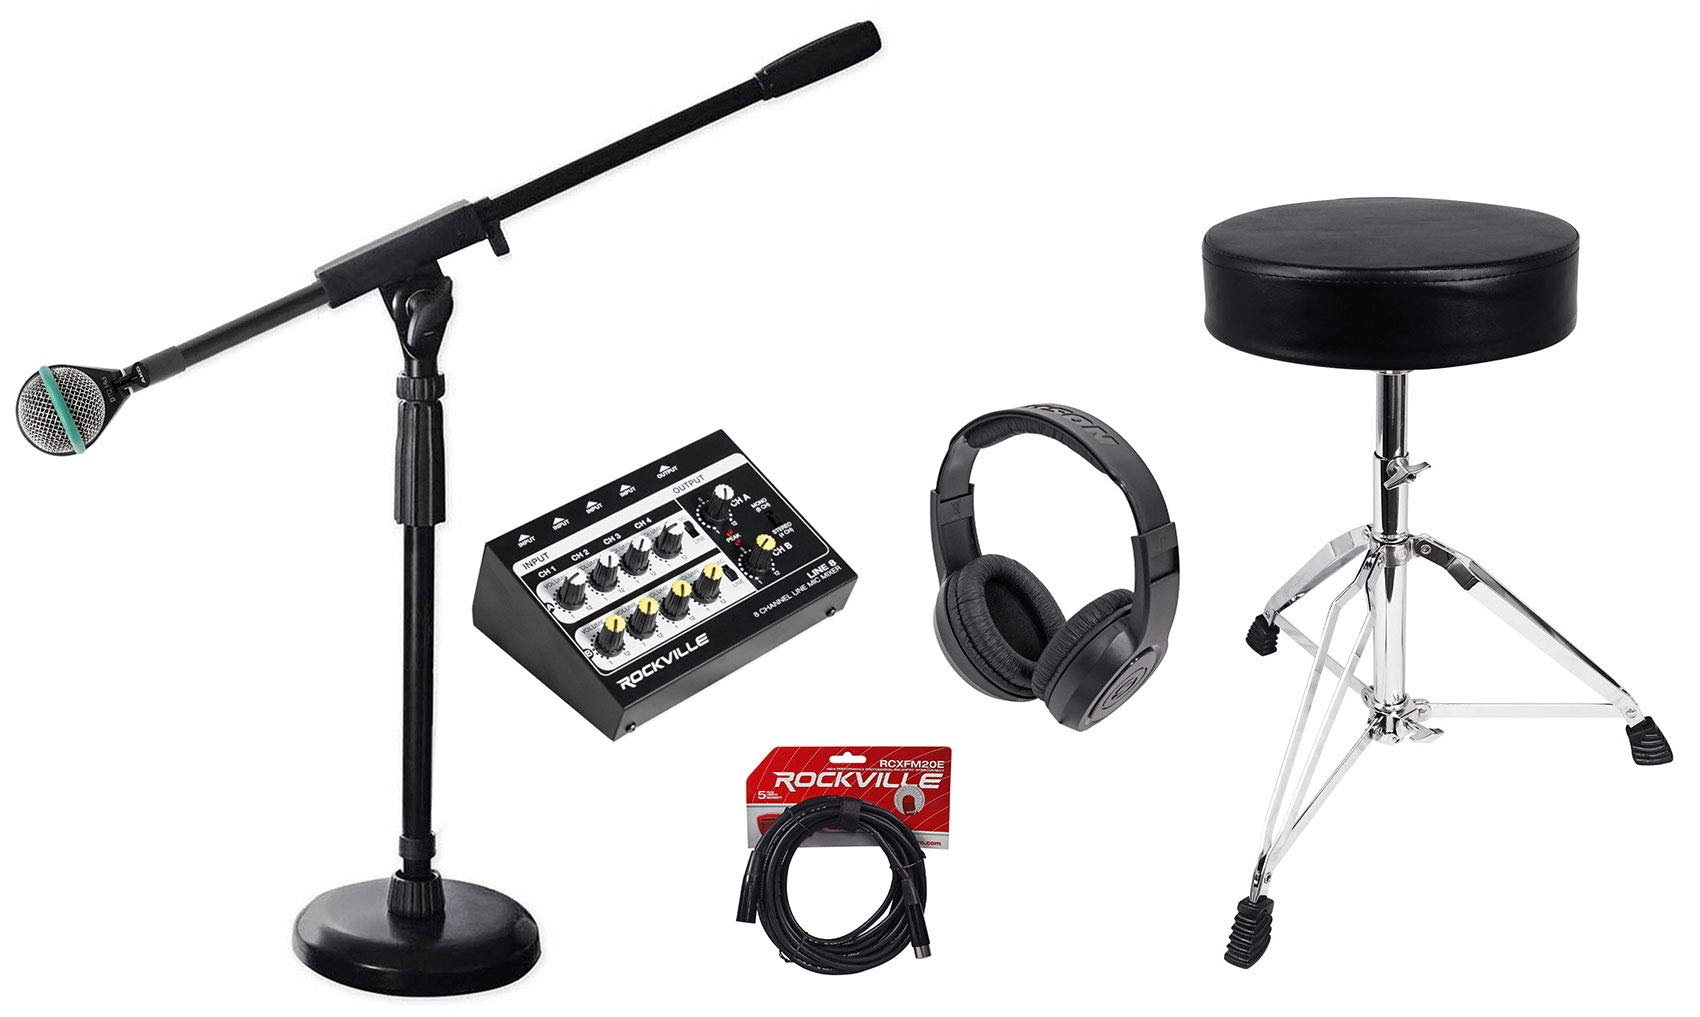 AKG D112 MKII Kick Drum Bass Guitar Microphone+Mic Mixer+Stand+Throne+Headphones by AKG